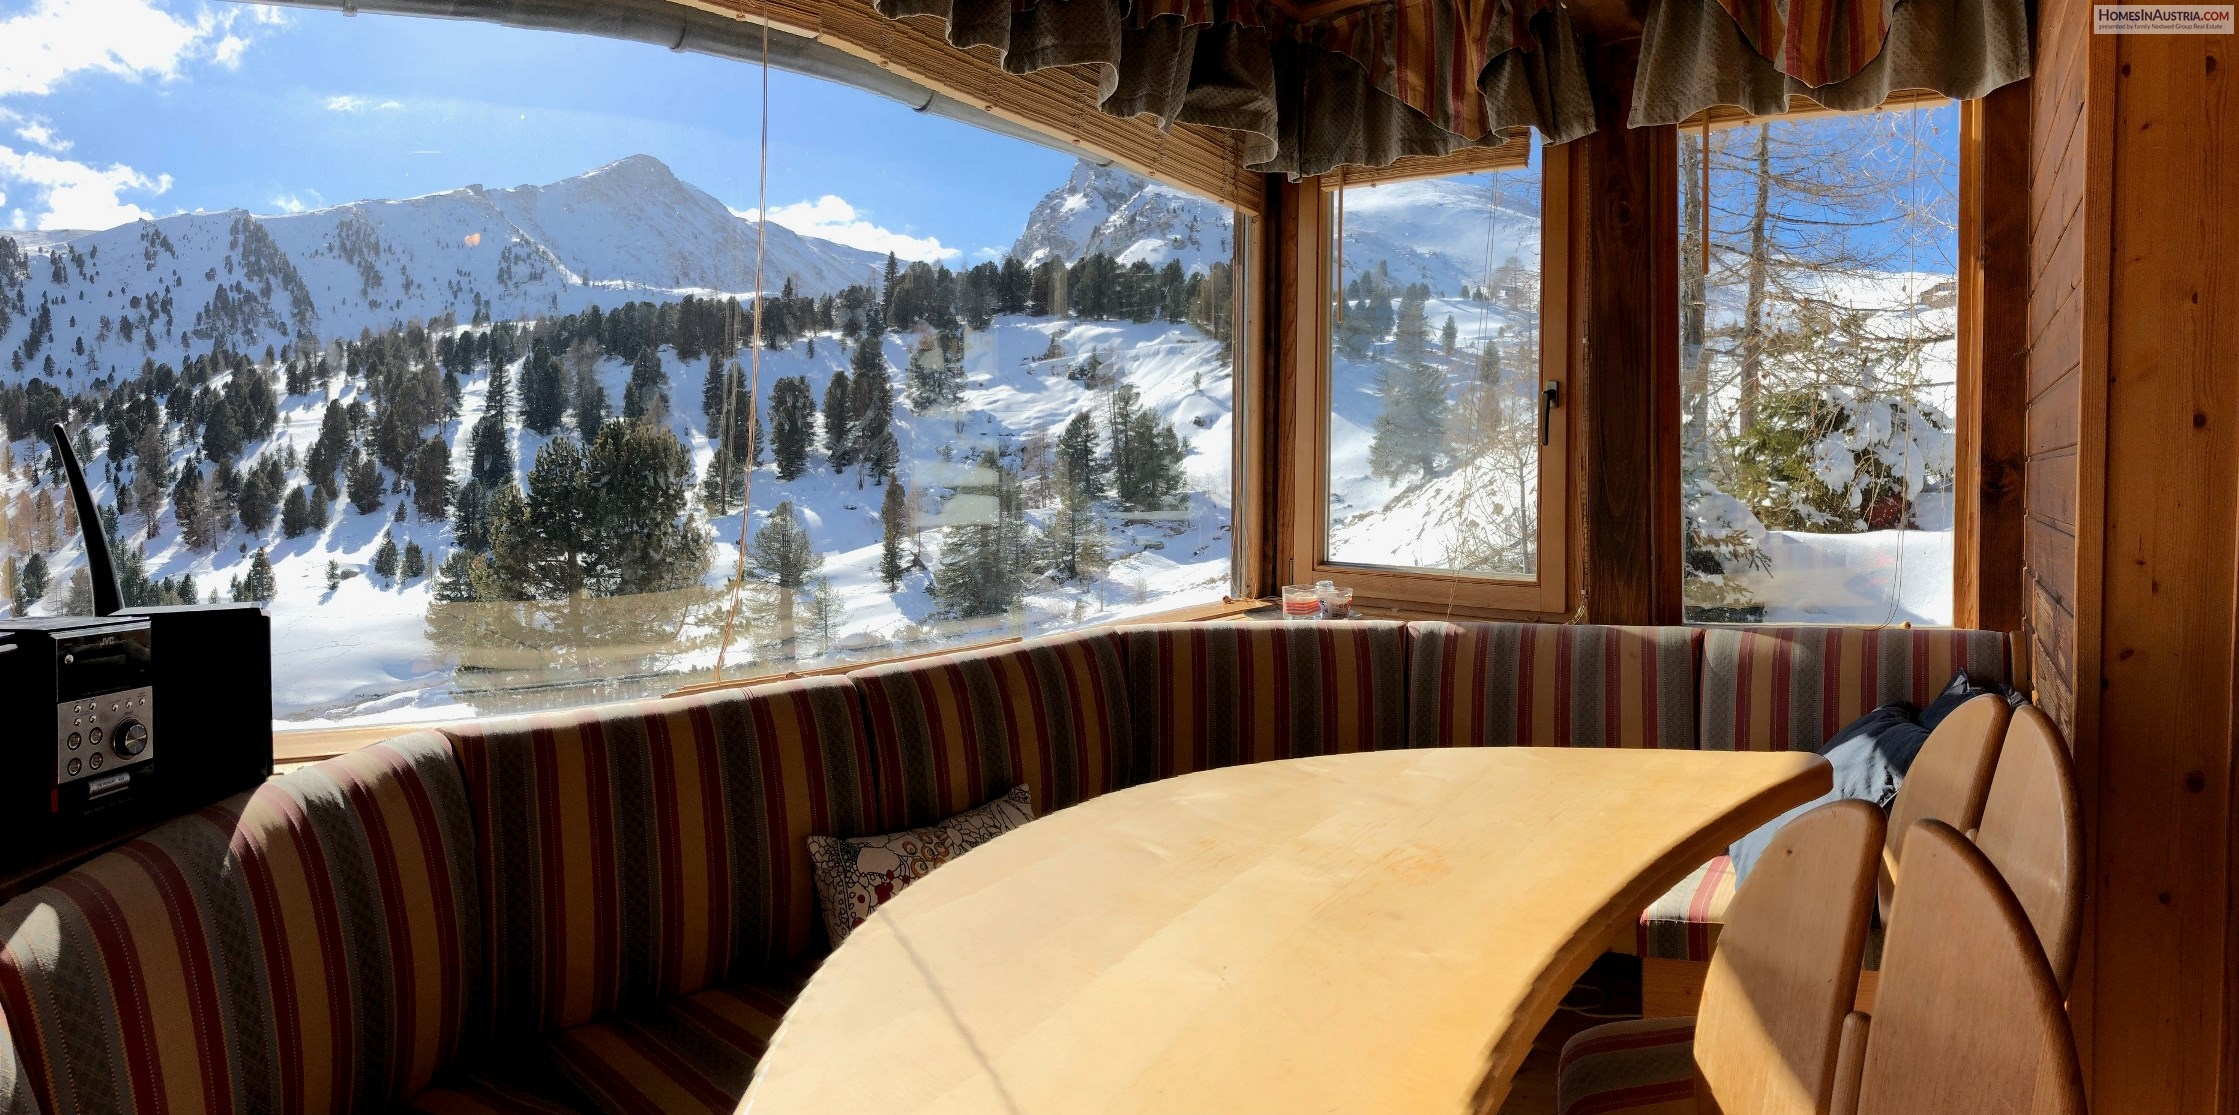 Falkert, Carinthia, Great Holiday Home in the Skiing and Hiking area Nockberge